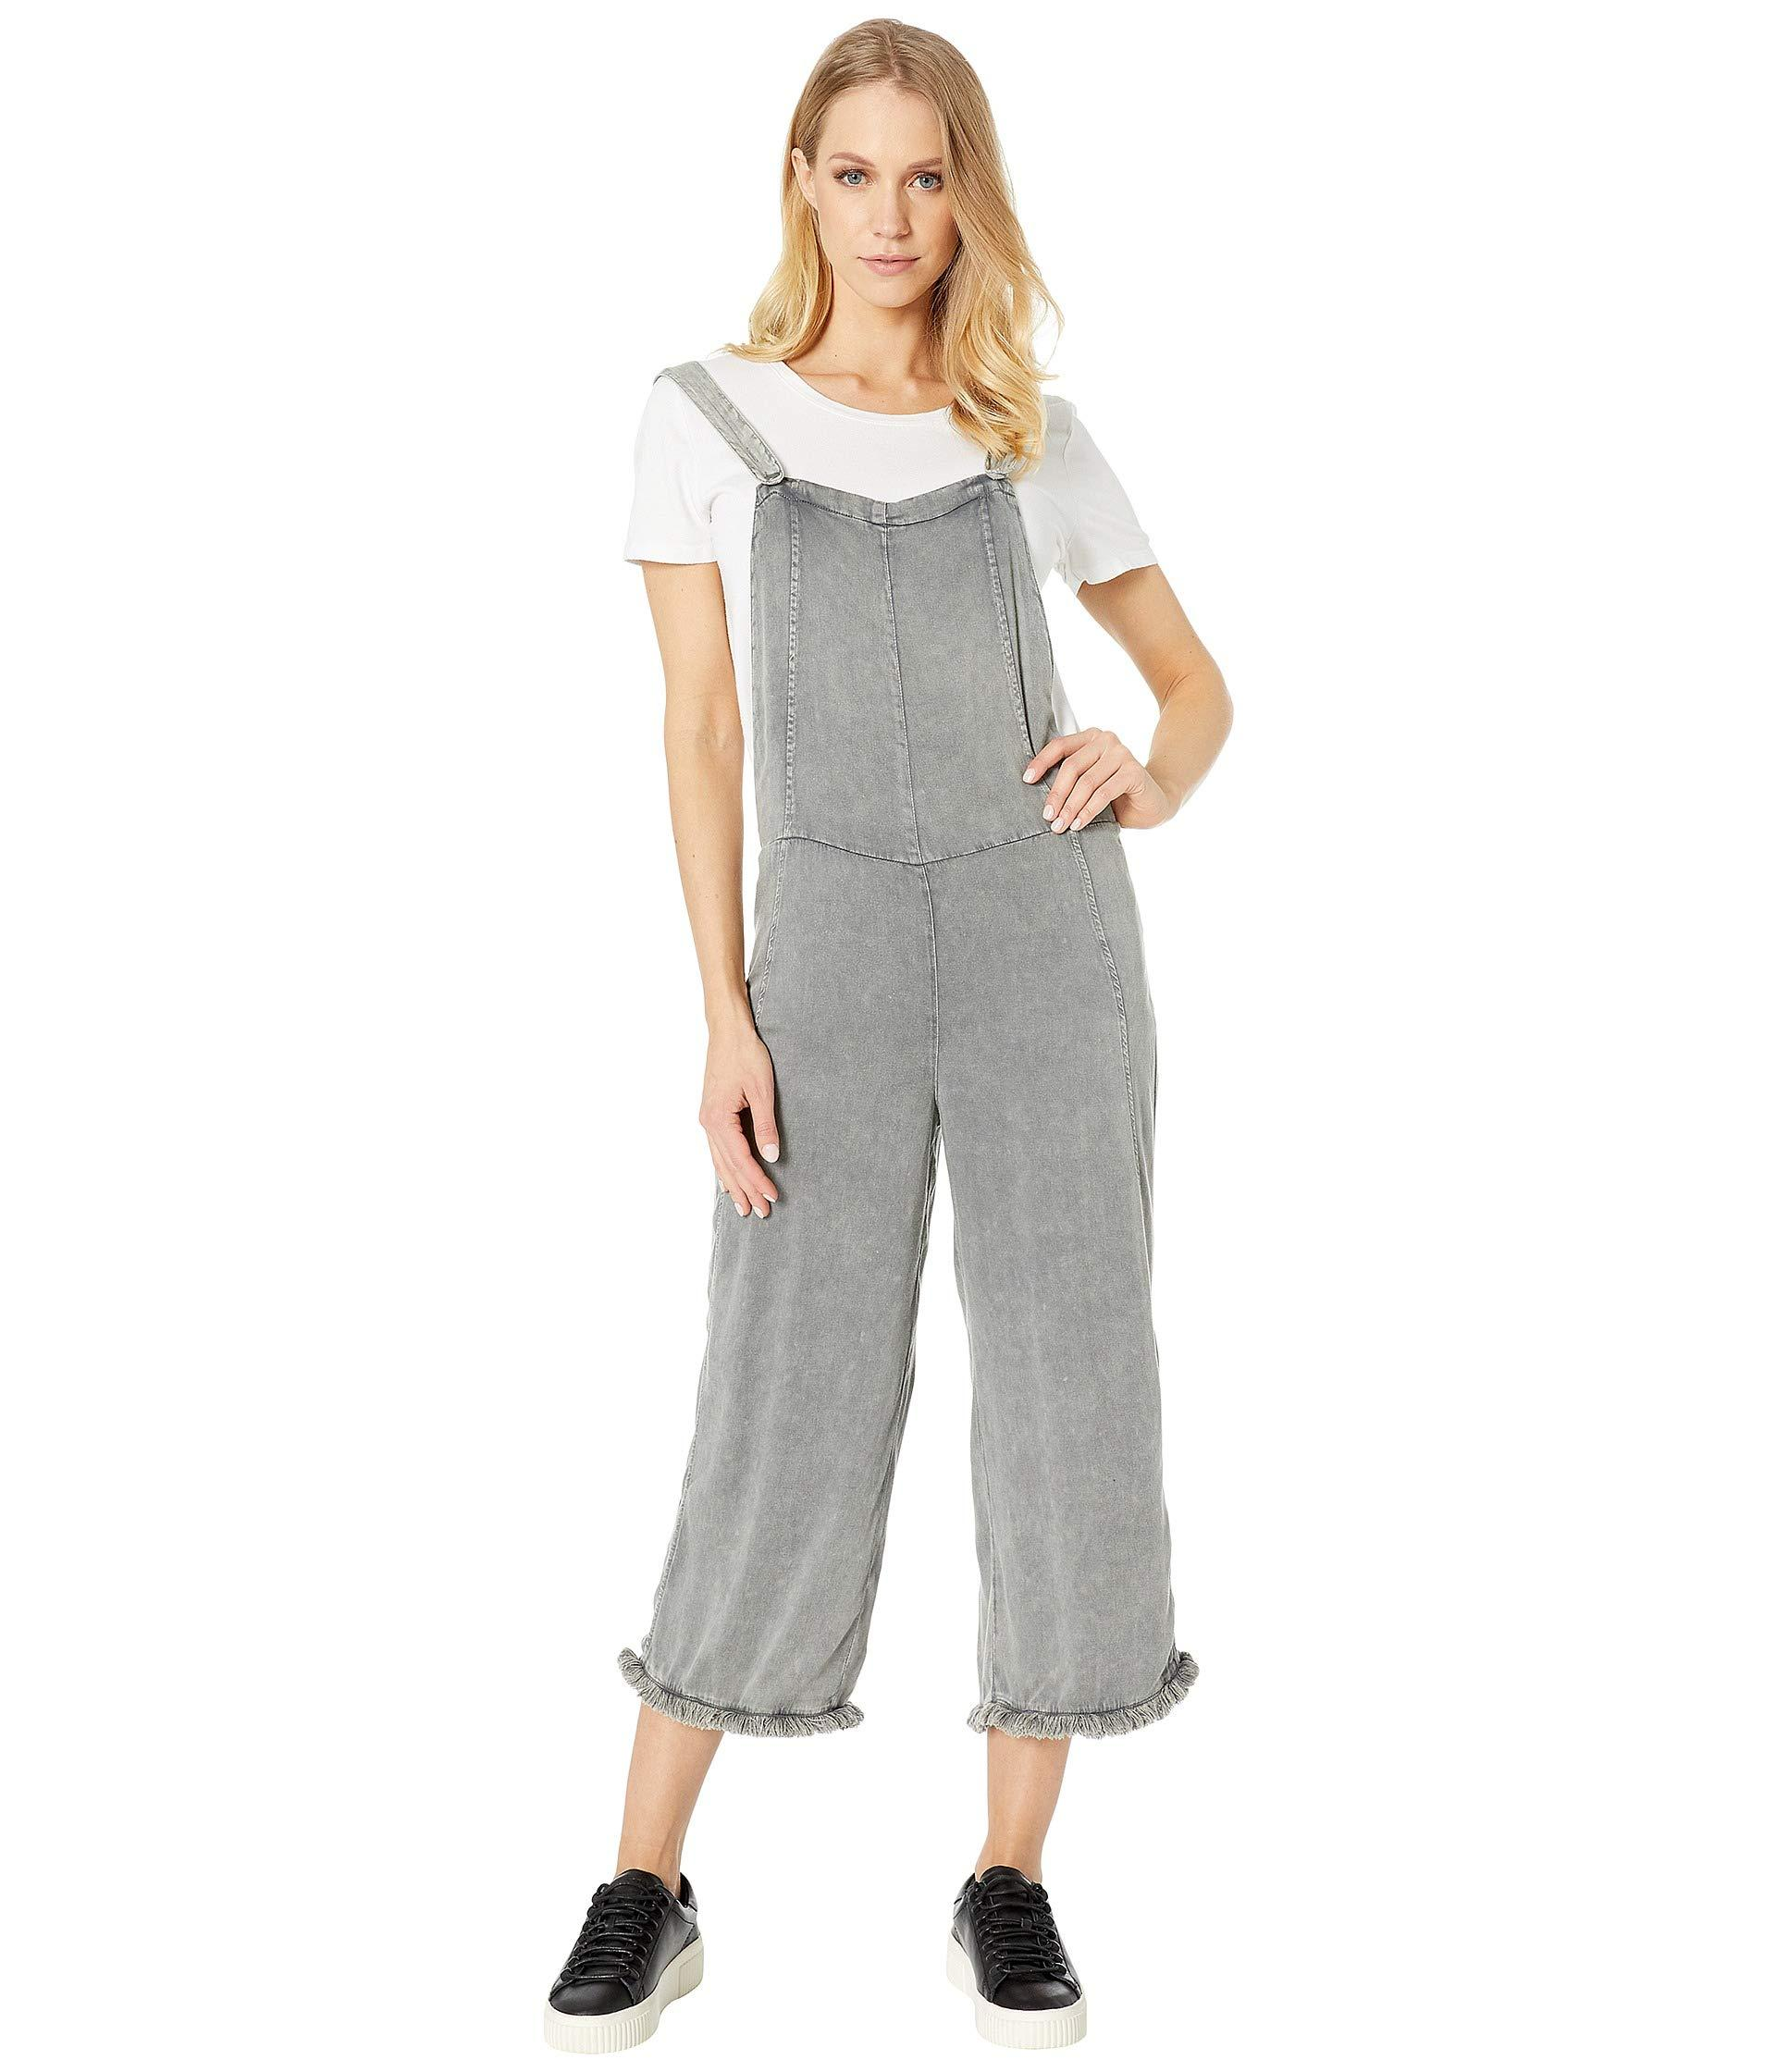 1a44f3a255 Lyst - Chaser Heirloom Woven Cross-back Cropped Overalls in Gray